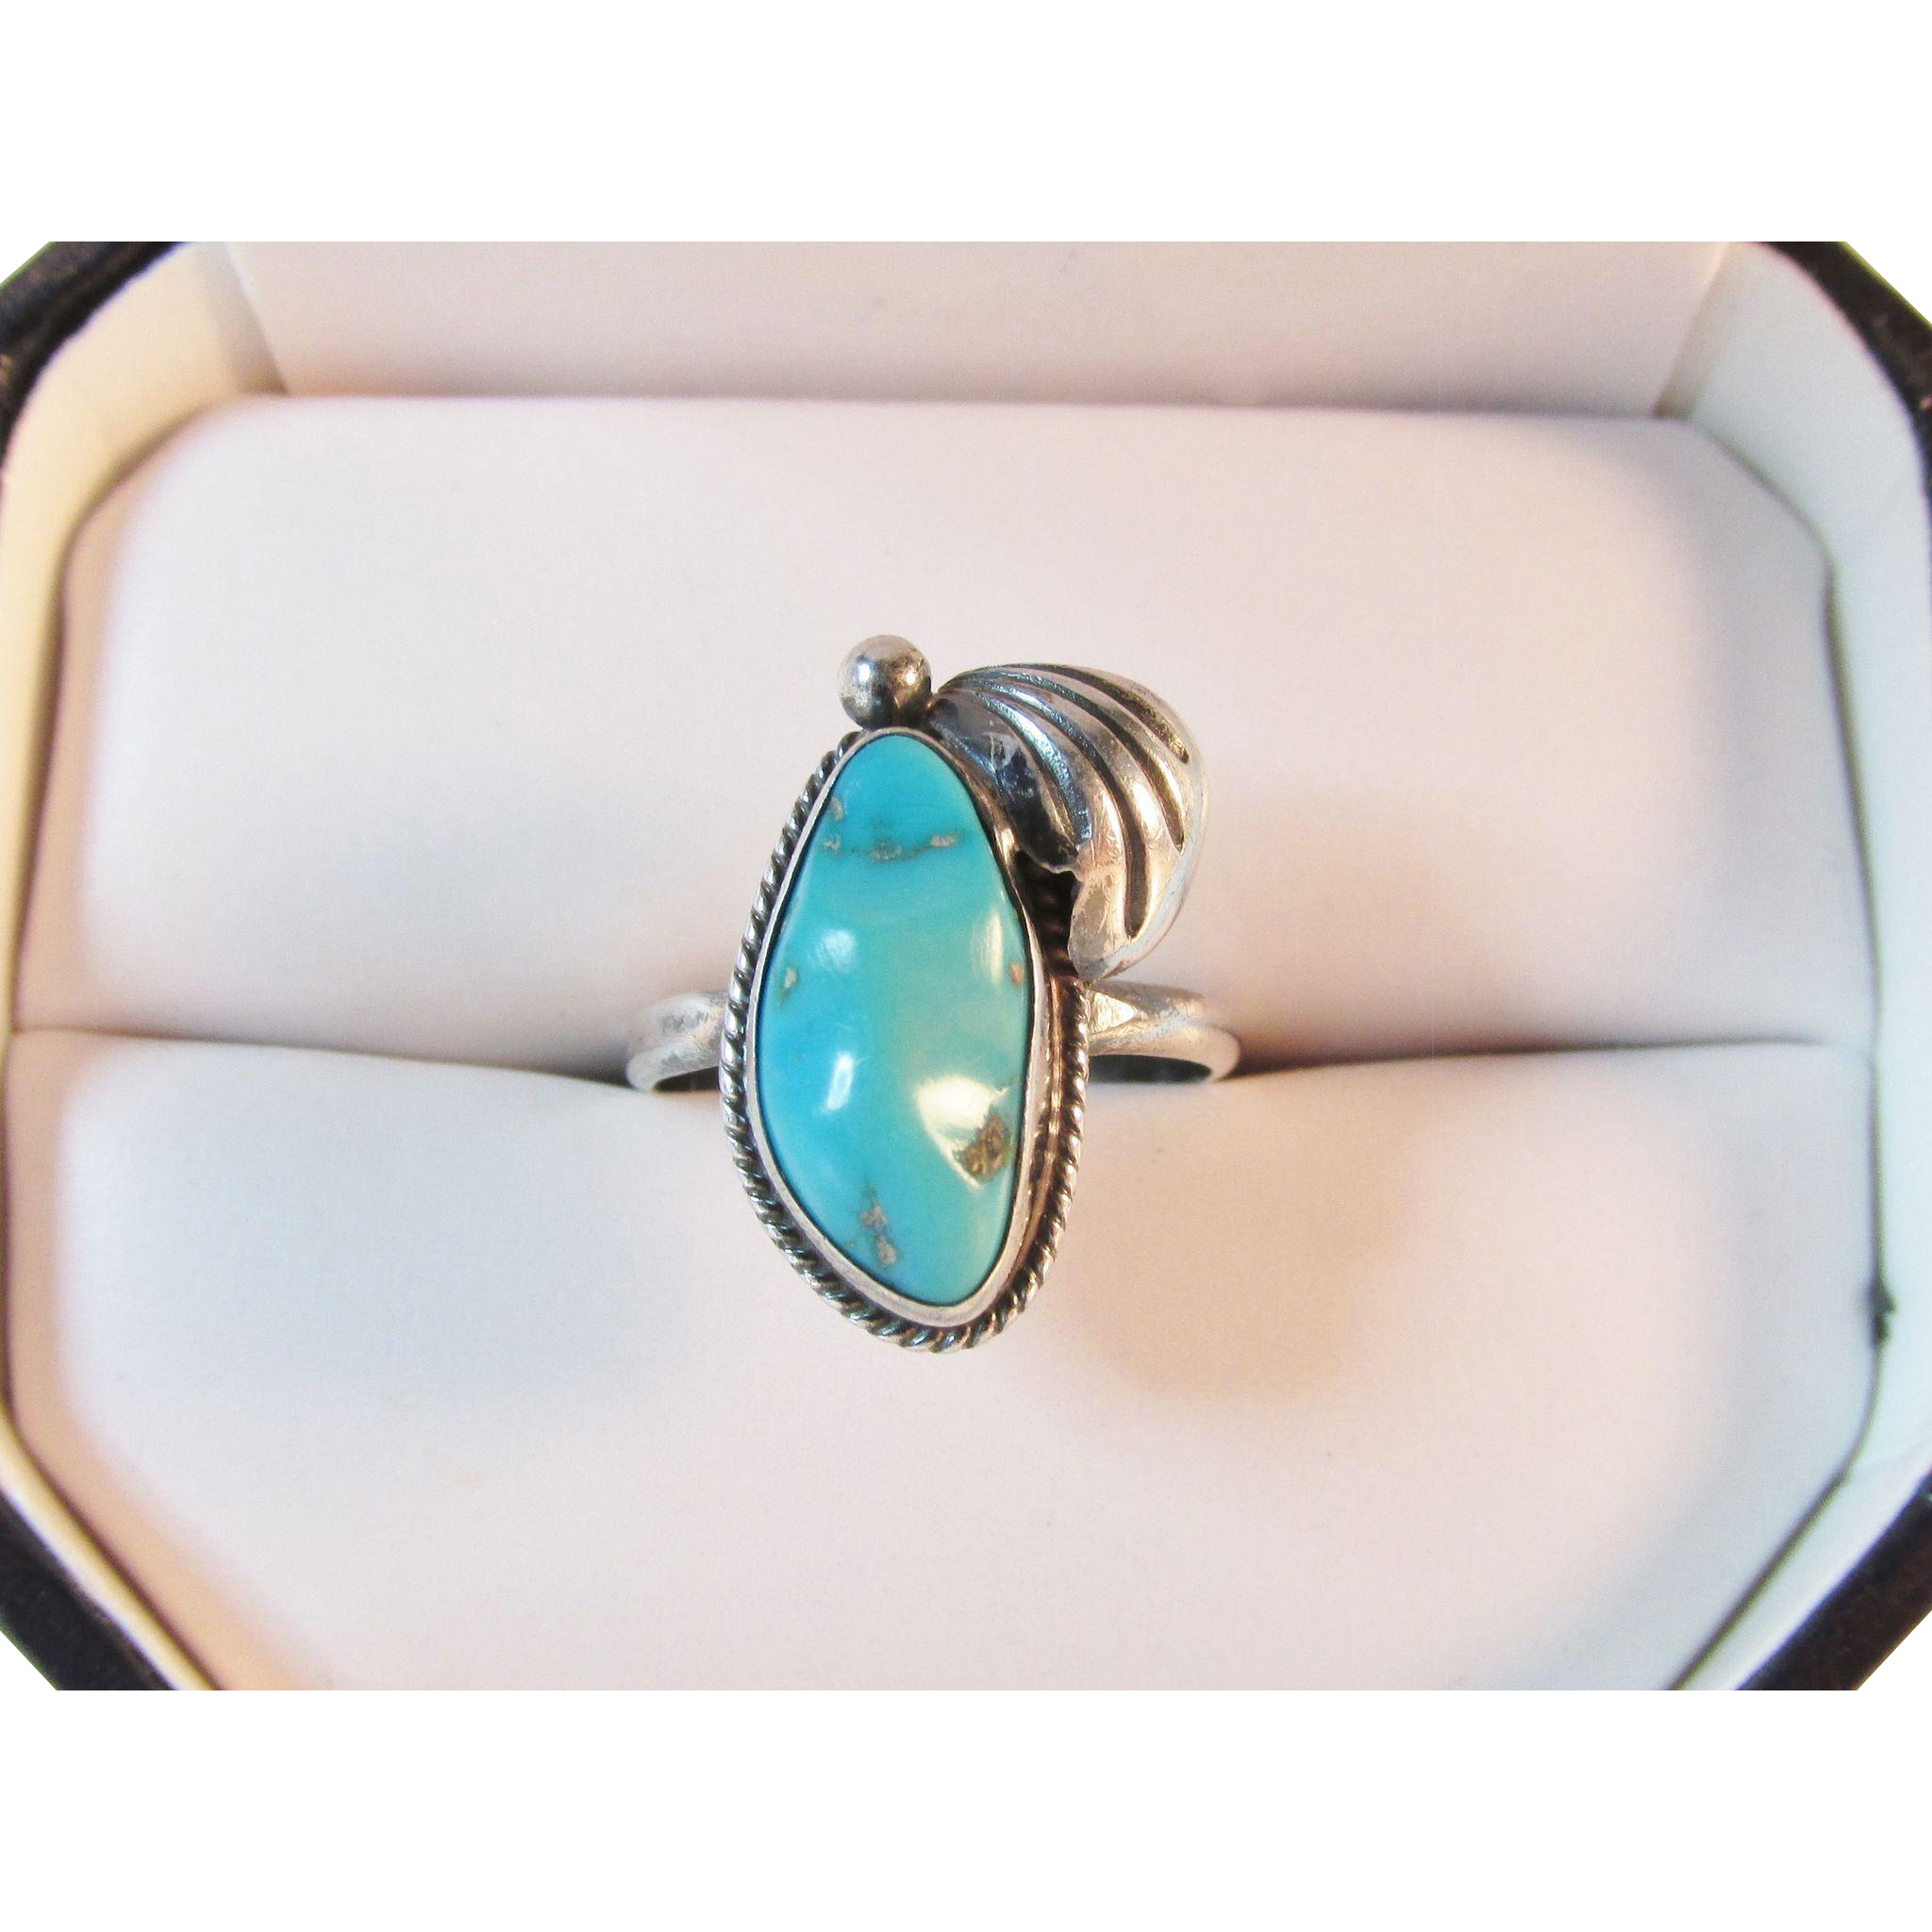 mike chee navajo sterling turquoise ring vintage from